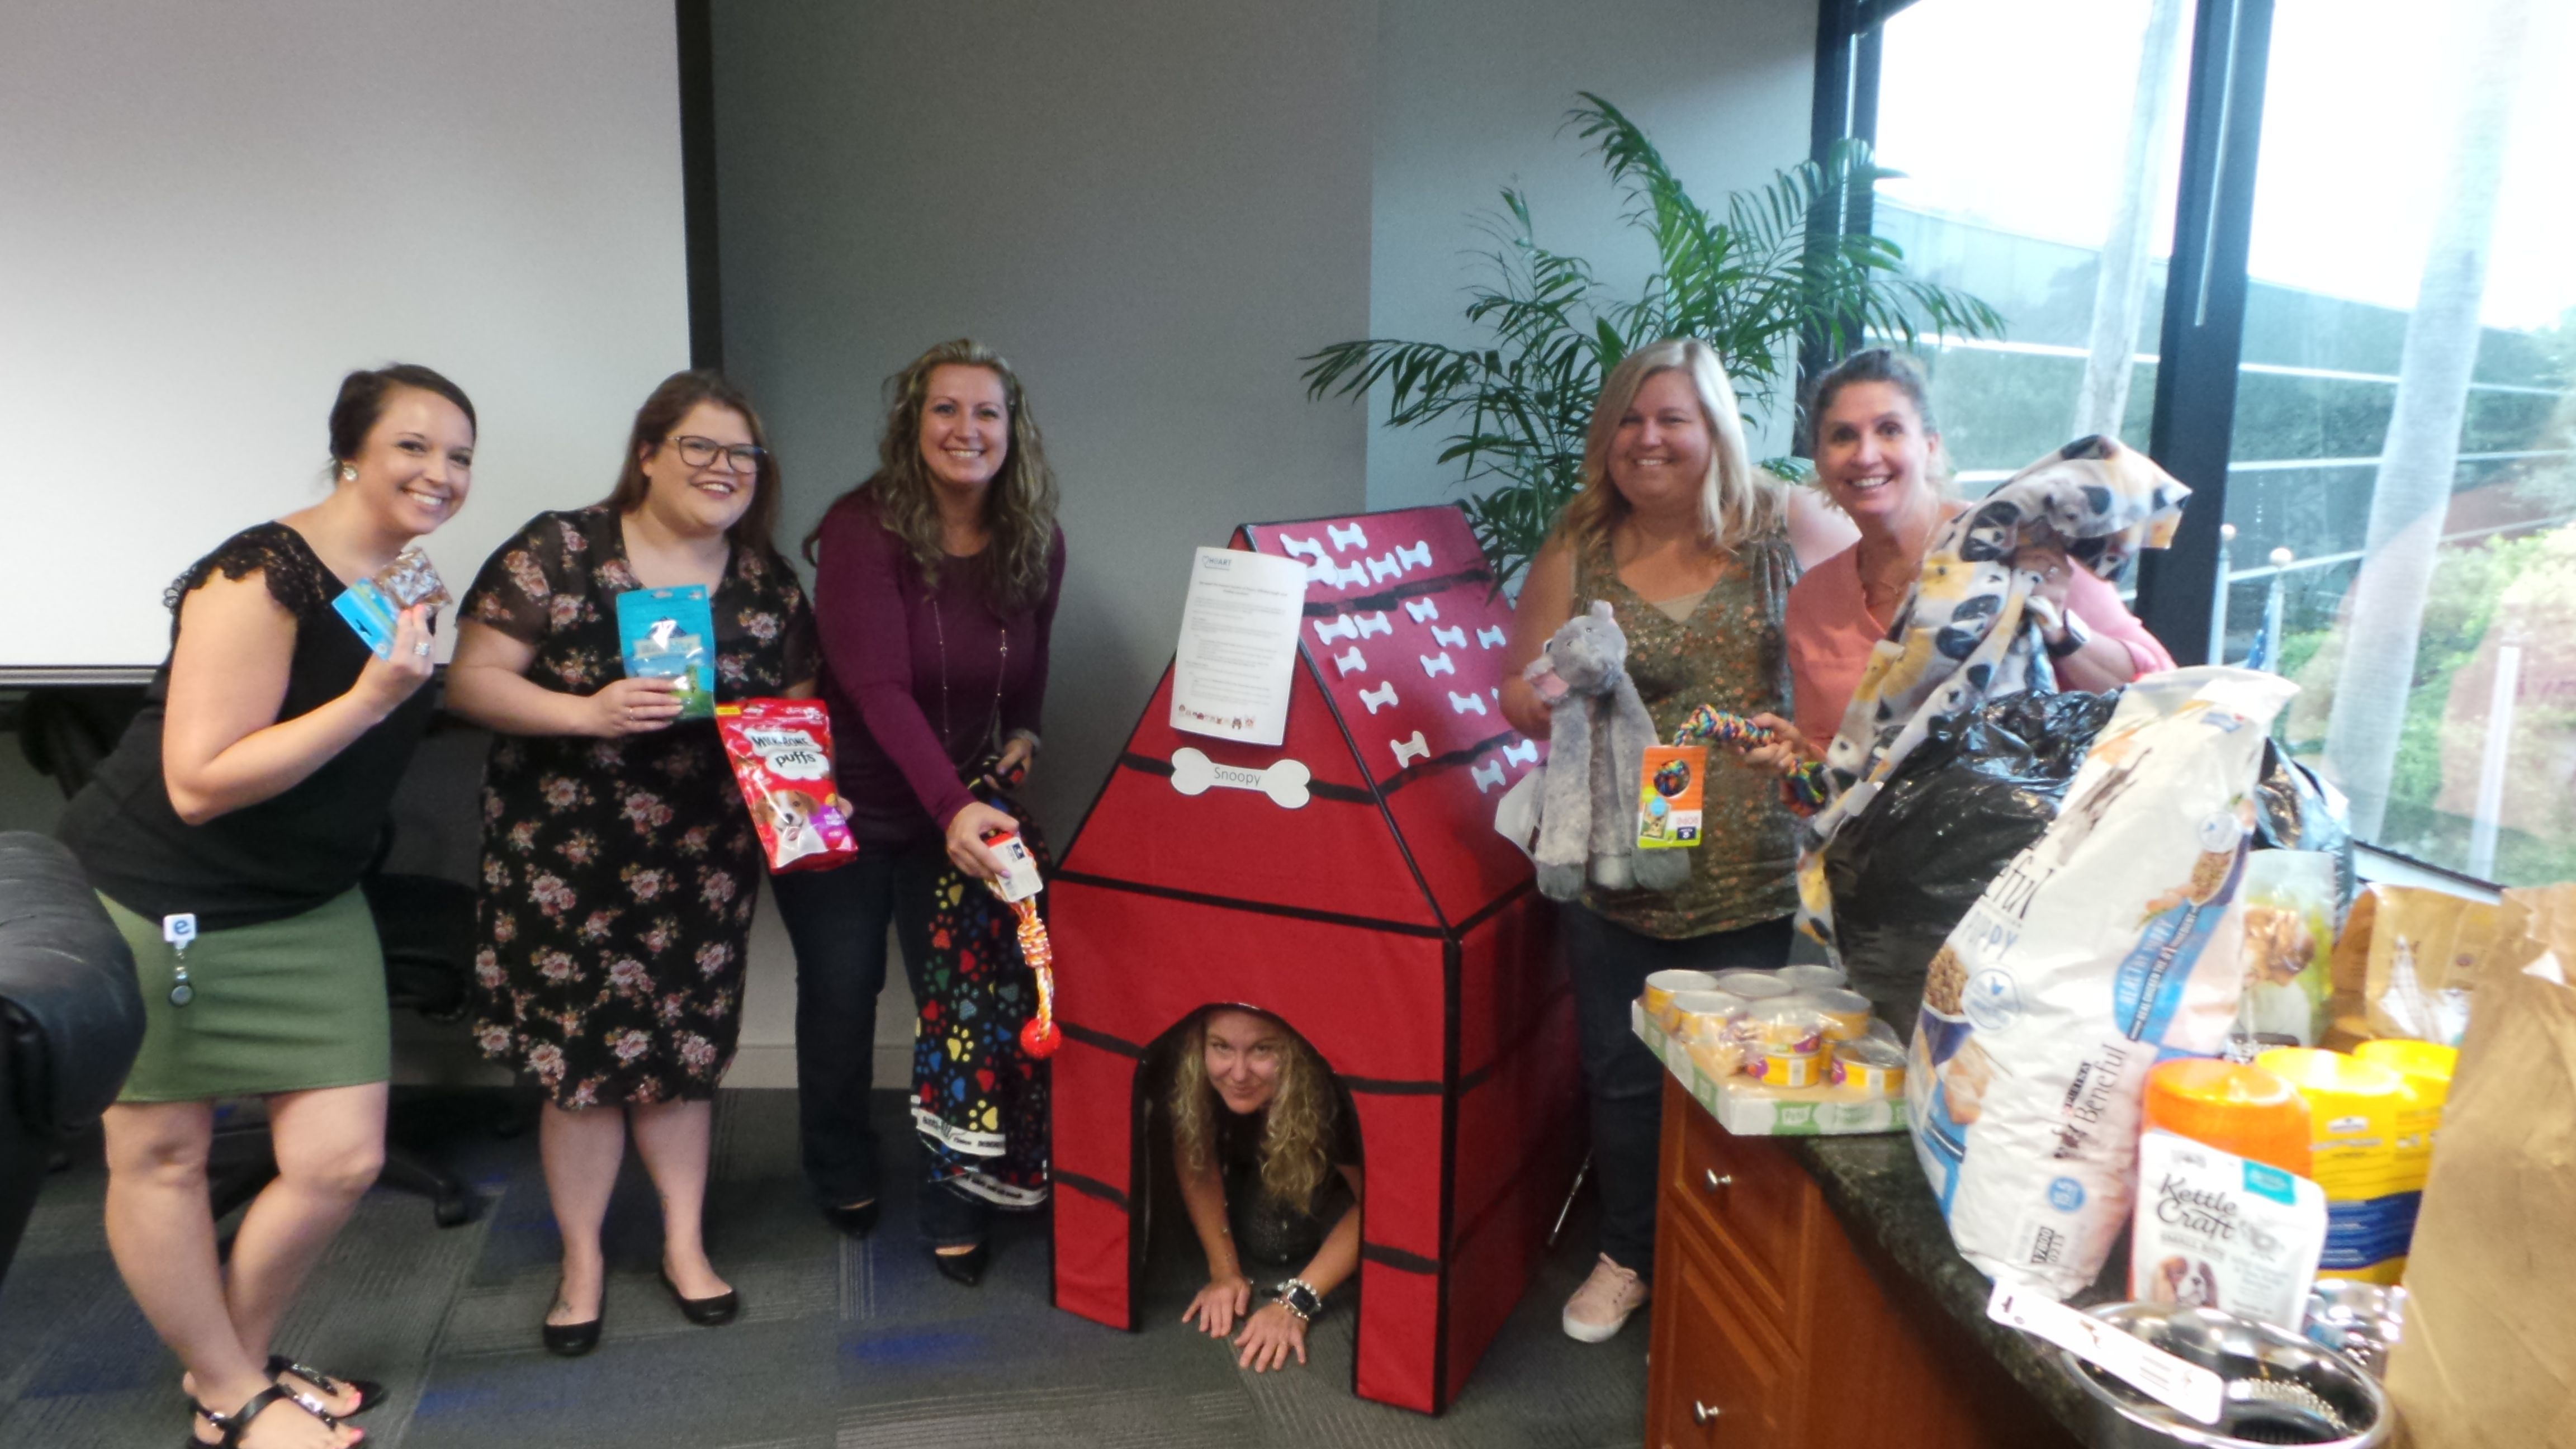 We Spent The Afternoon Packing Up Our Pet Supply Donations And Making Pet Blankets Before Sending Them Off To The Humane Hillsborough County Hillsborough Pasco